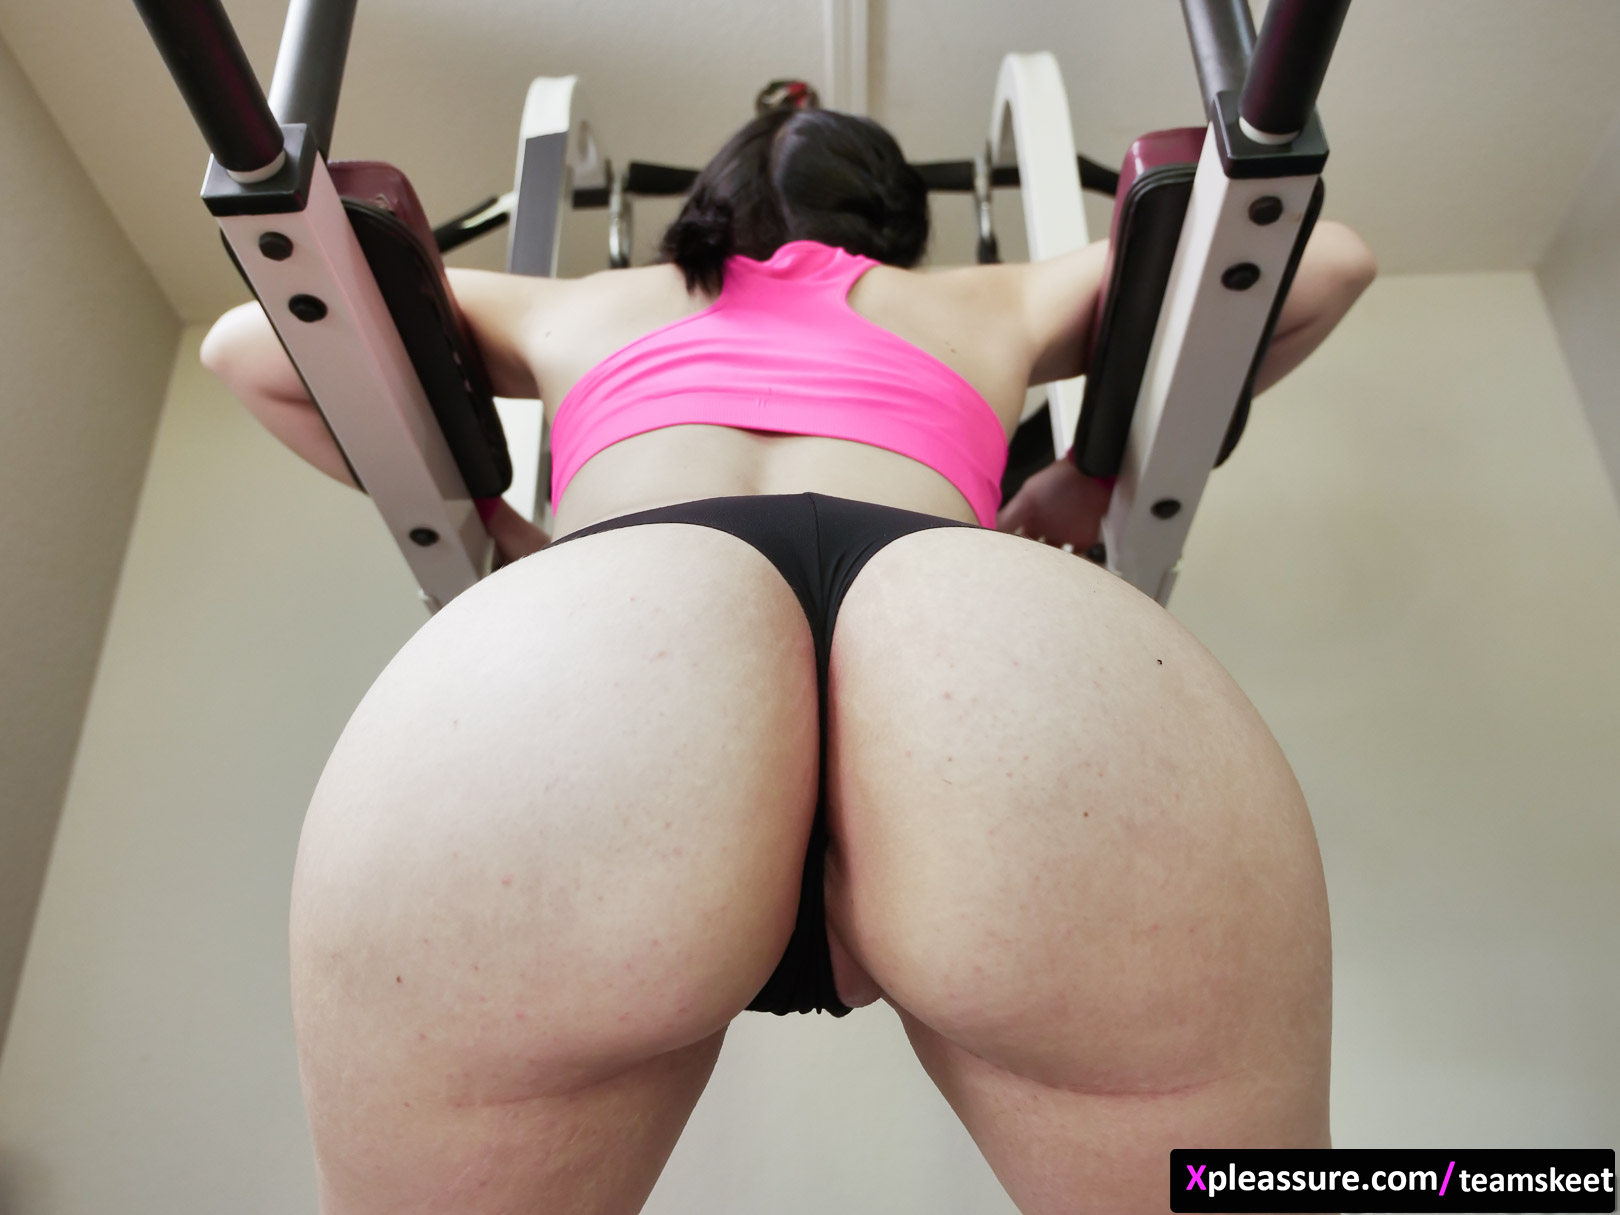 TeamSkeet - The Real Workout – P90Sex scene starring Violet Rain & Rion King (12/25)